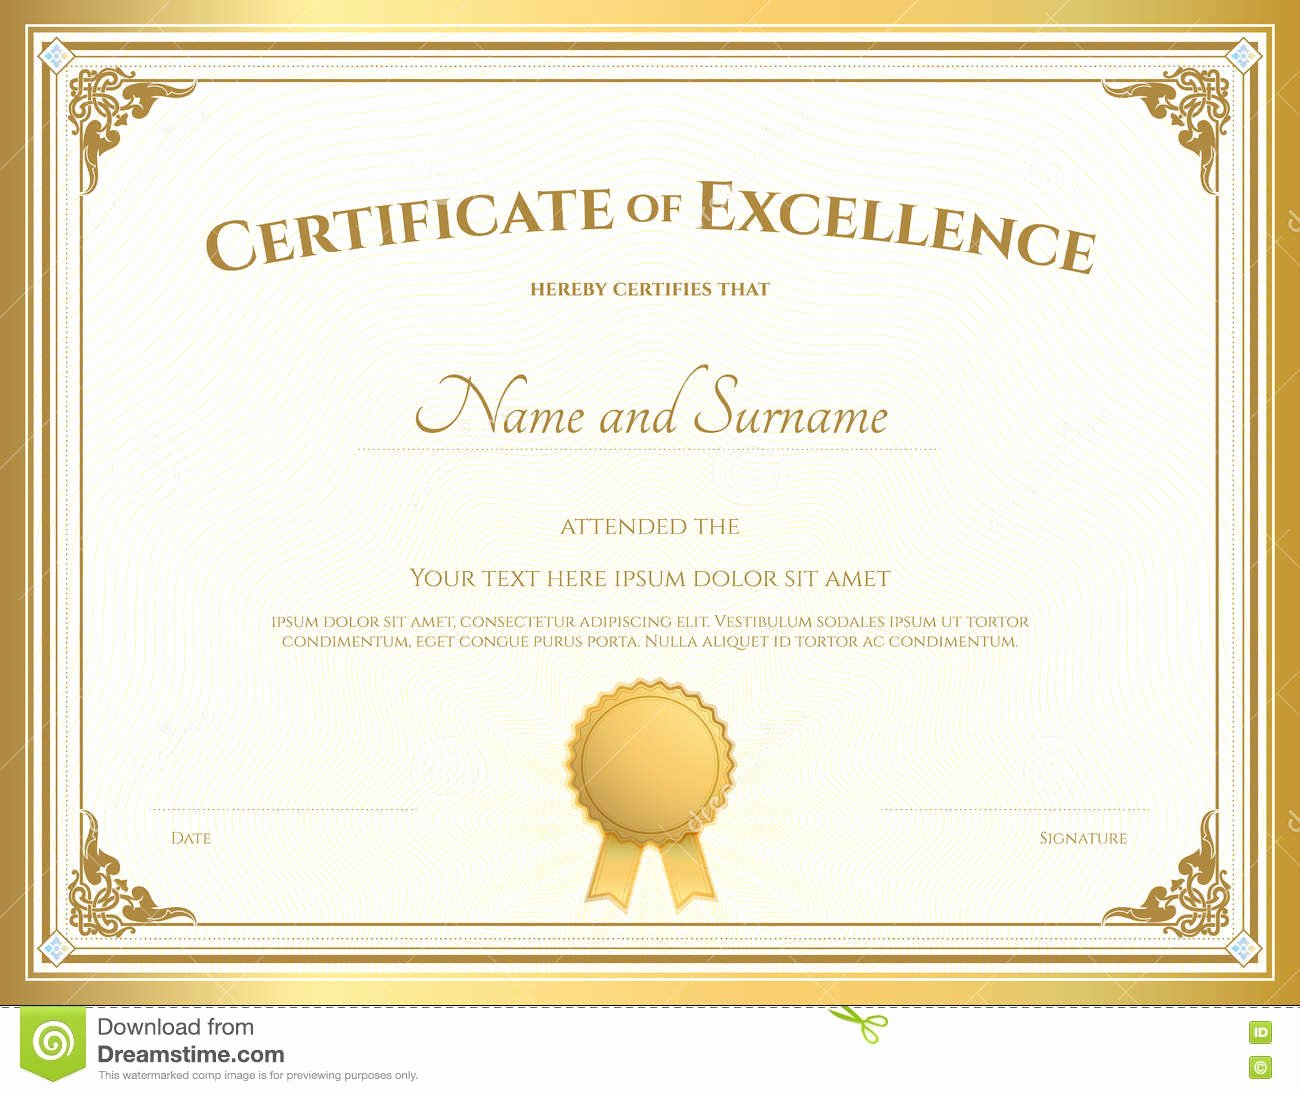 Certificate Of Excellence Template Elegant Certificate Excellence Template with Gold Border Stock